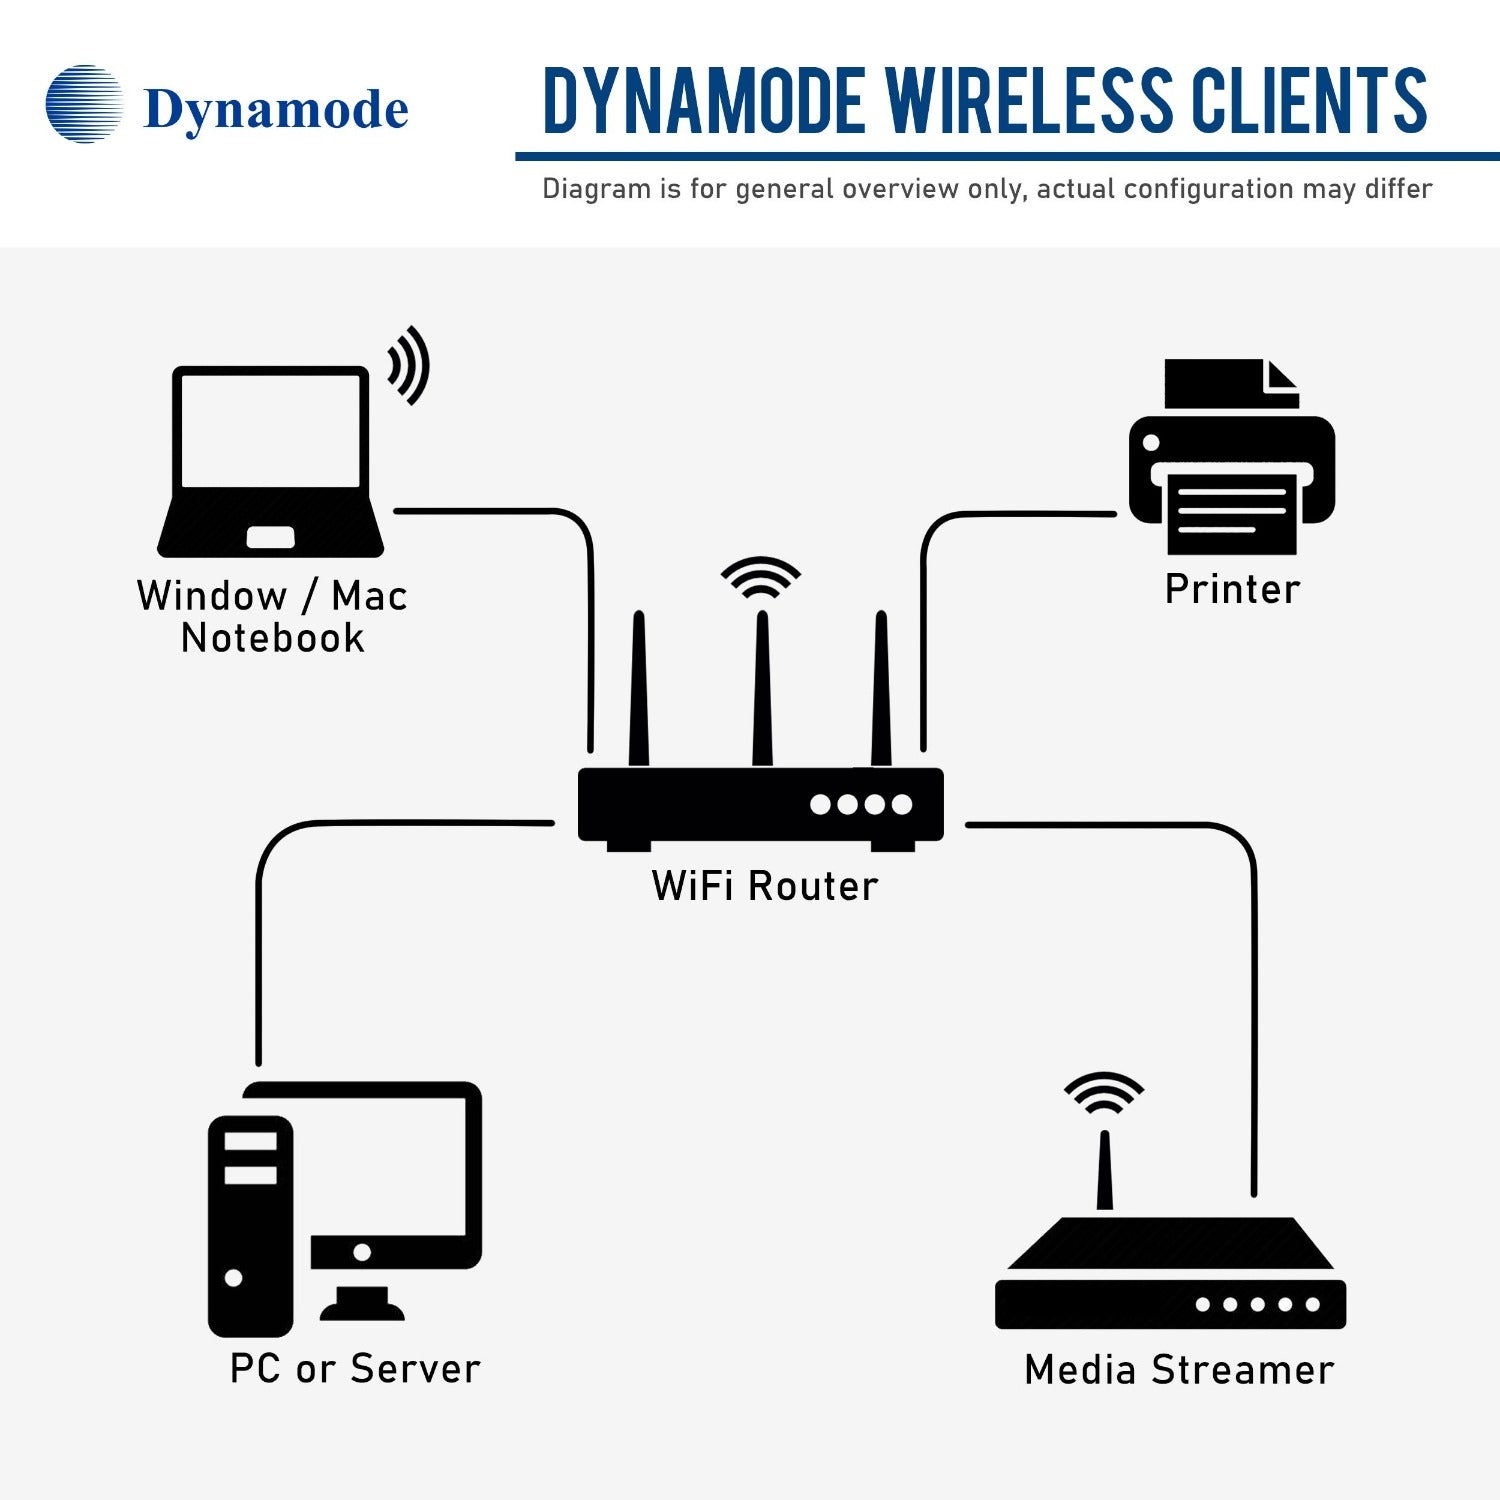 Dynamode WL-700N-ART 150Mbps WiFi High Gain Adapter